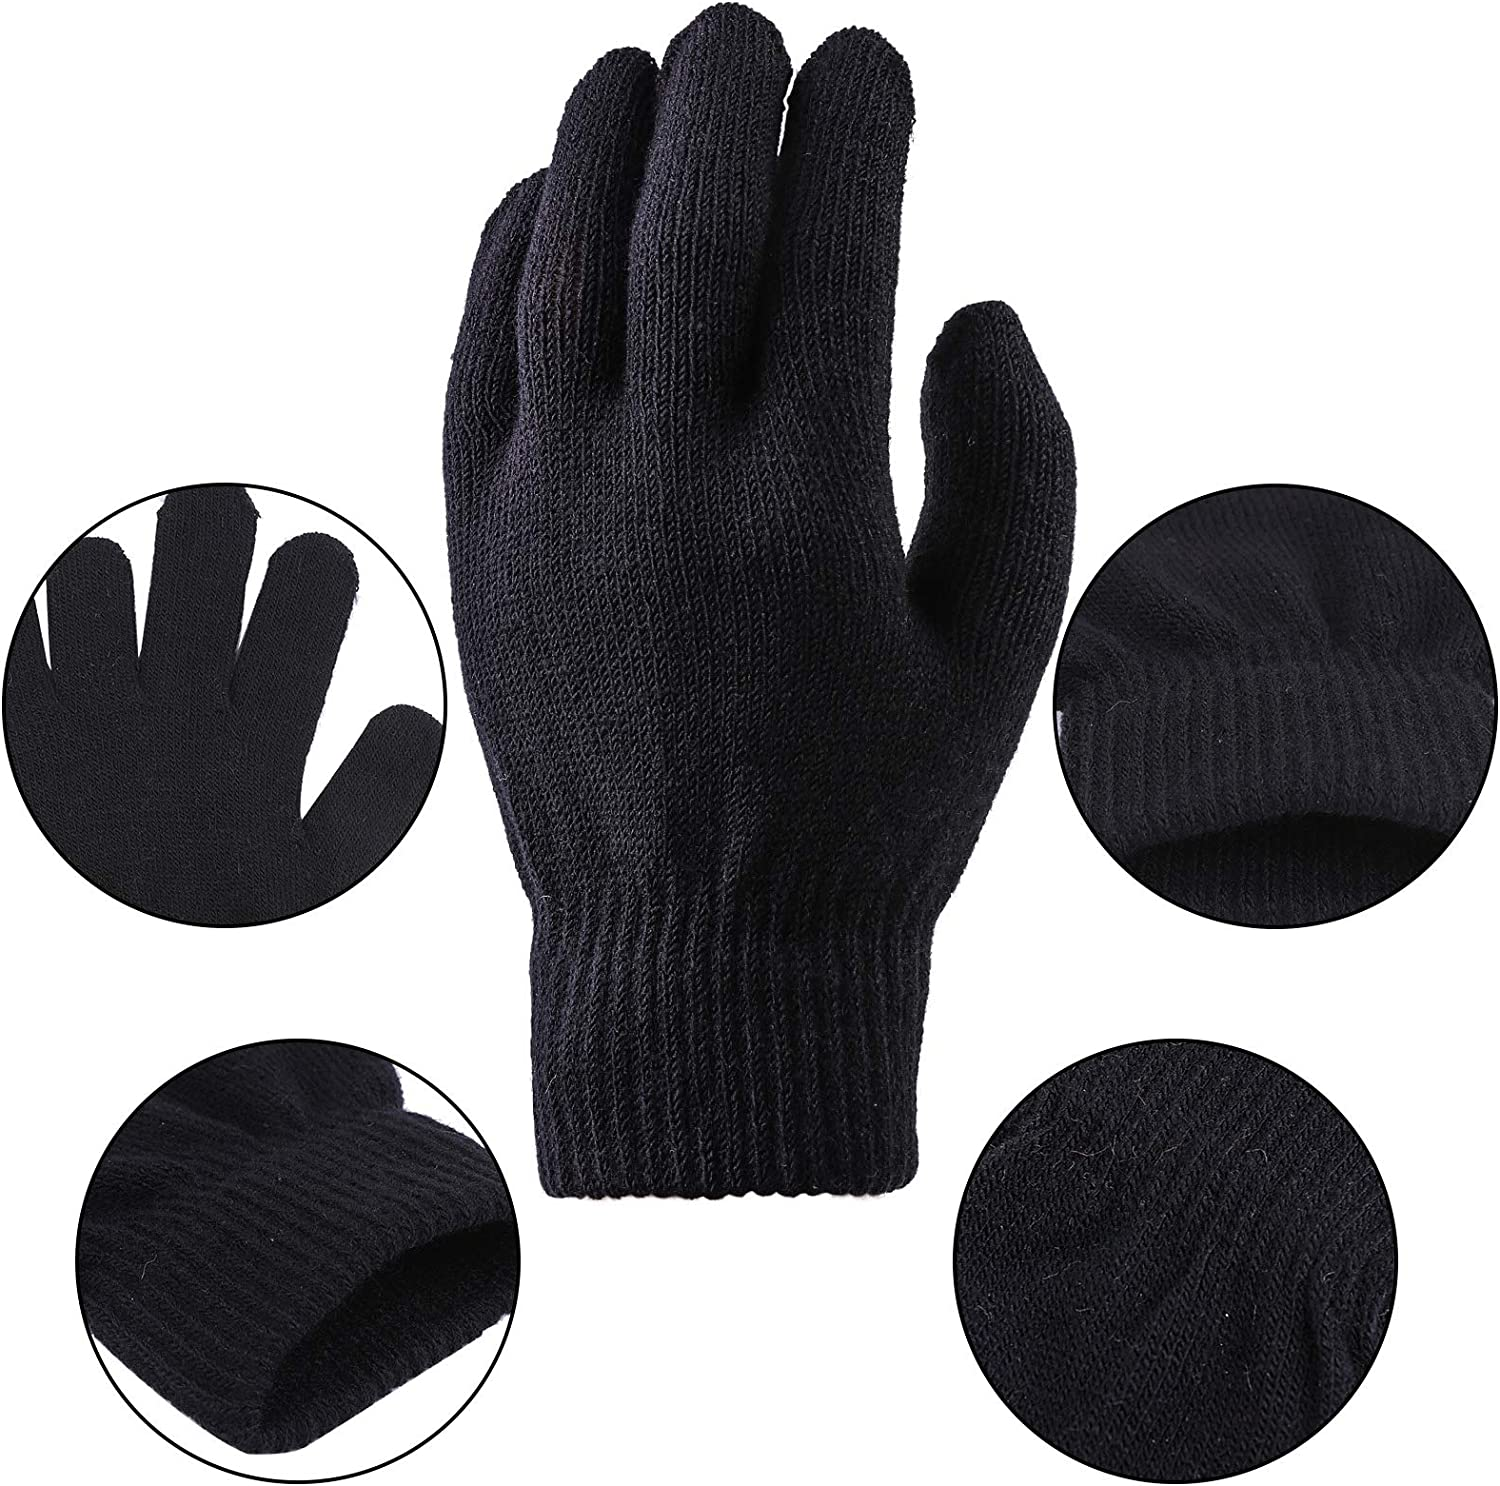 Include Striped Long Sleeve T-shirt Knit Cap Gloves Canvas Bags and Eye Mask/… URATOT Halloween Robber Costume Set